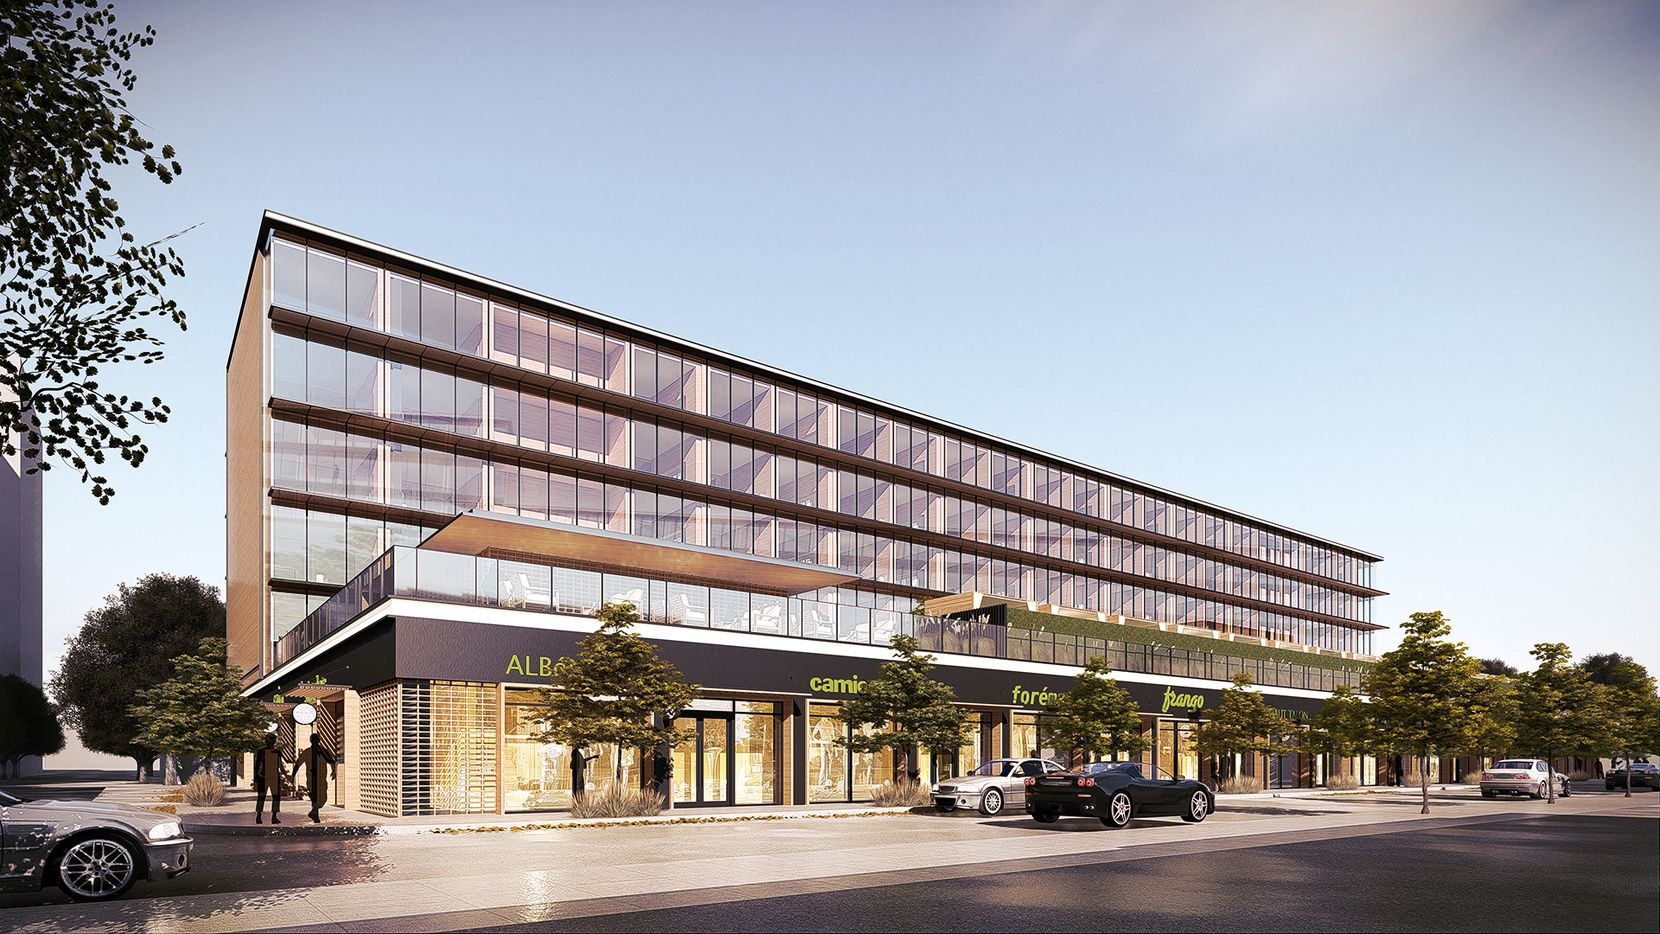 The planned 6-story hotel would cost about $50 million.